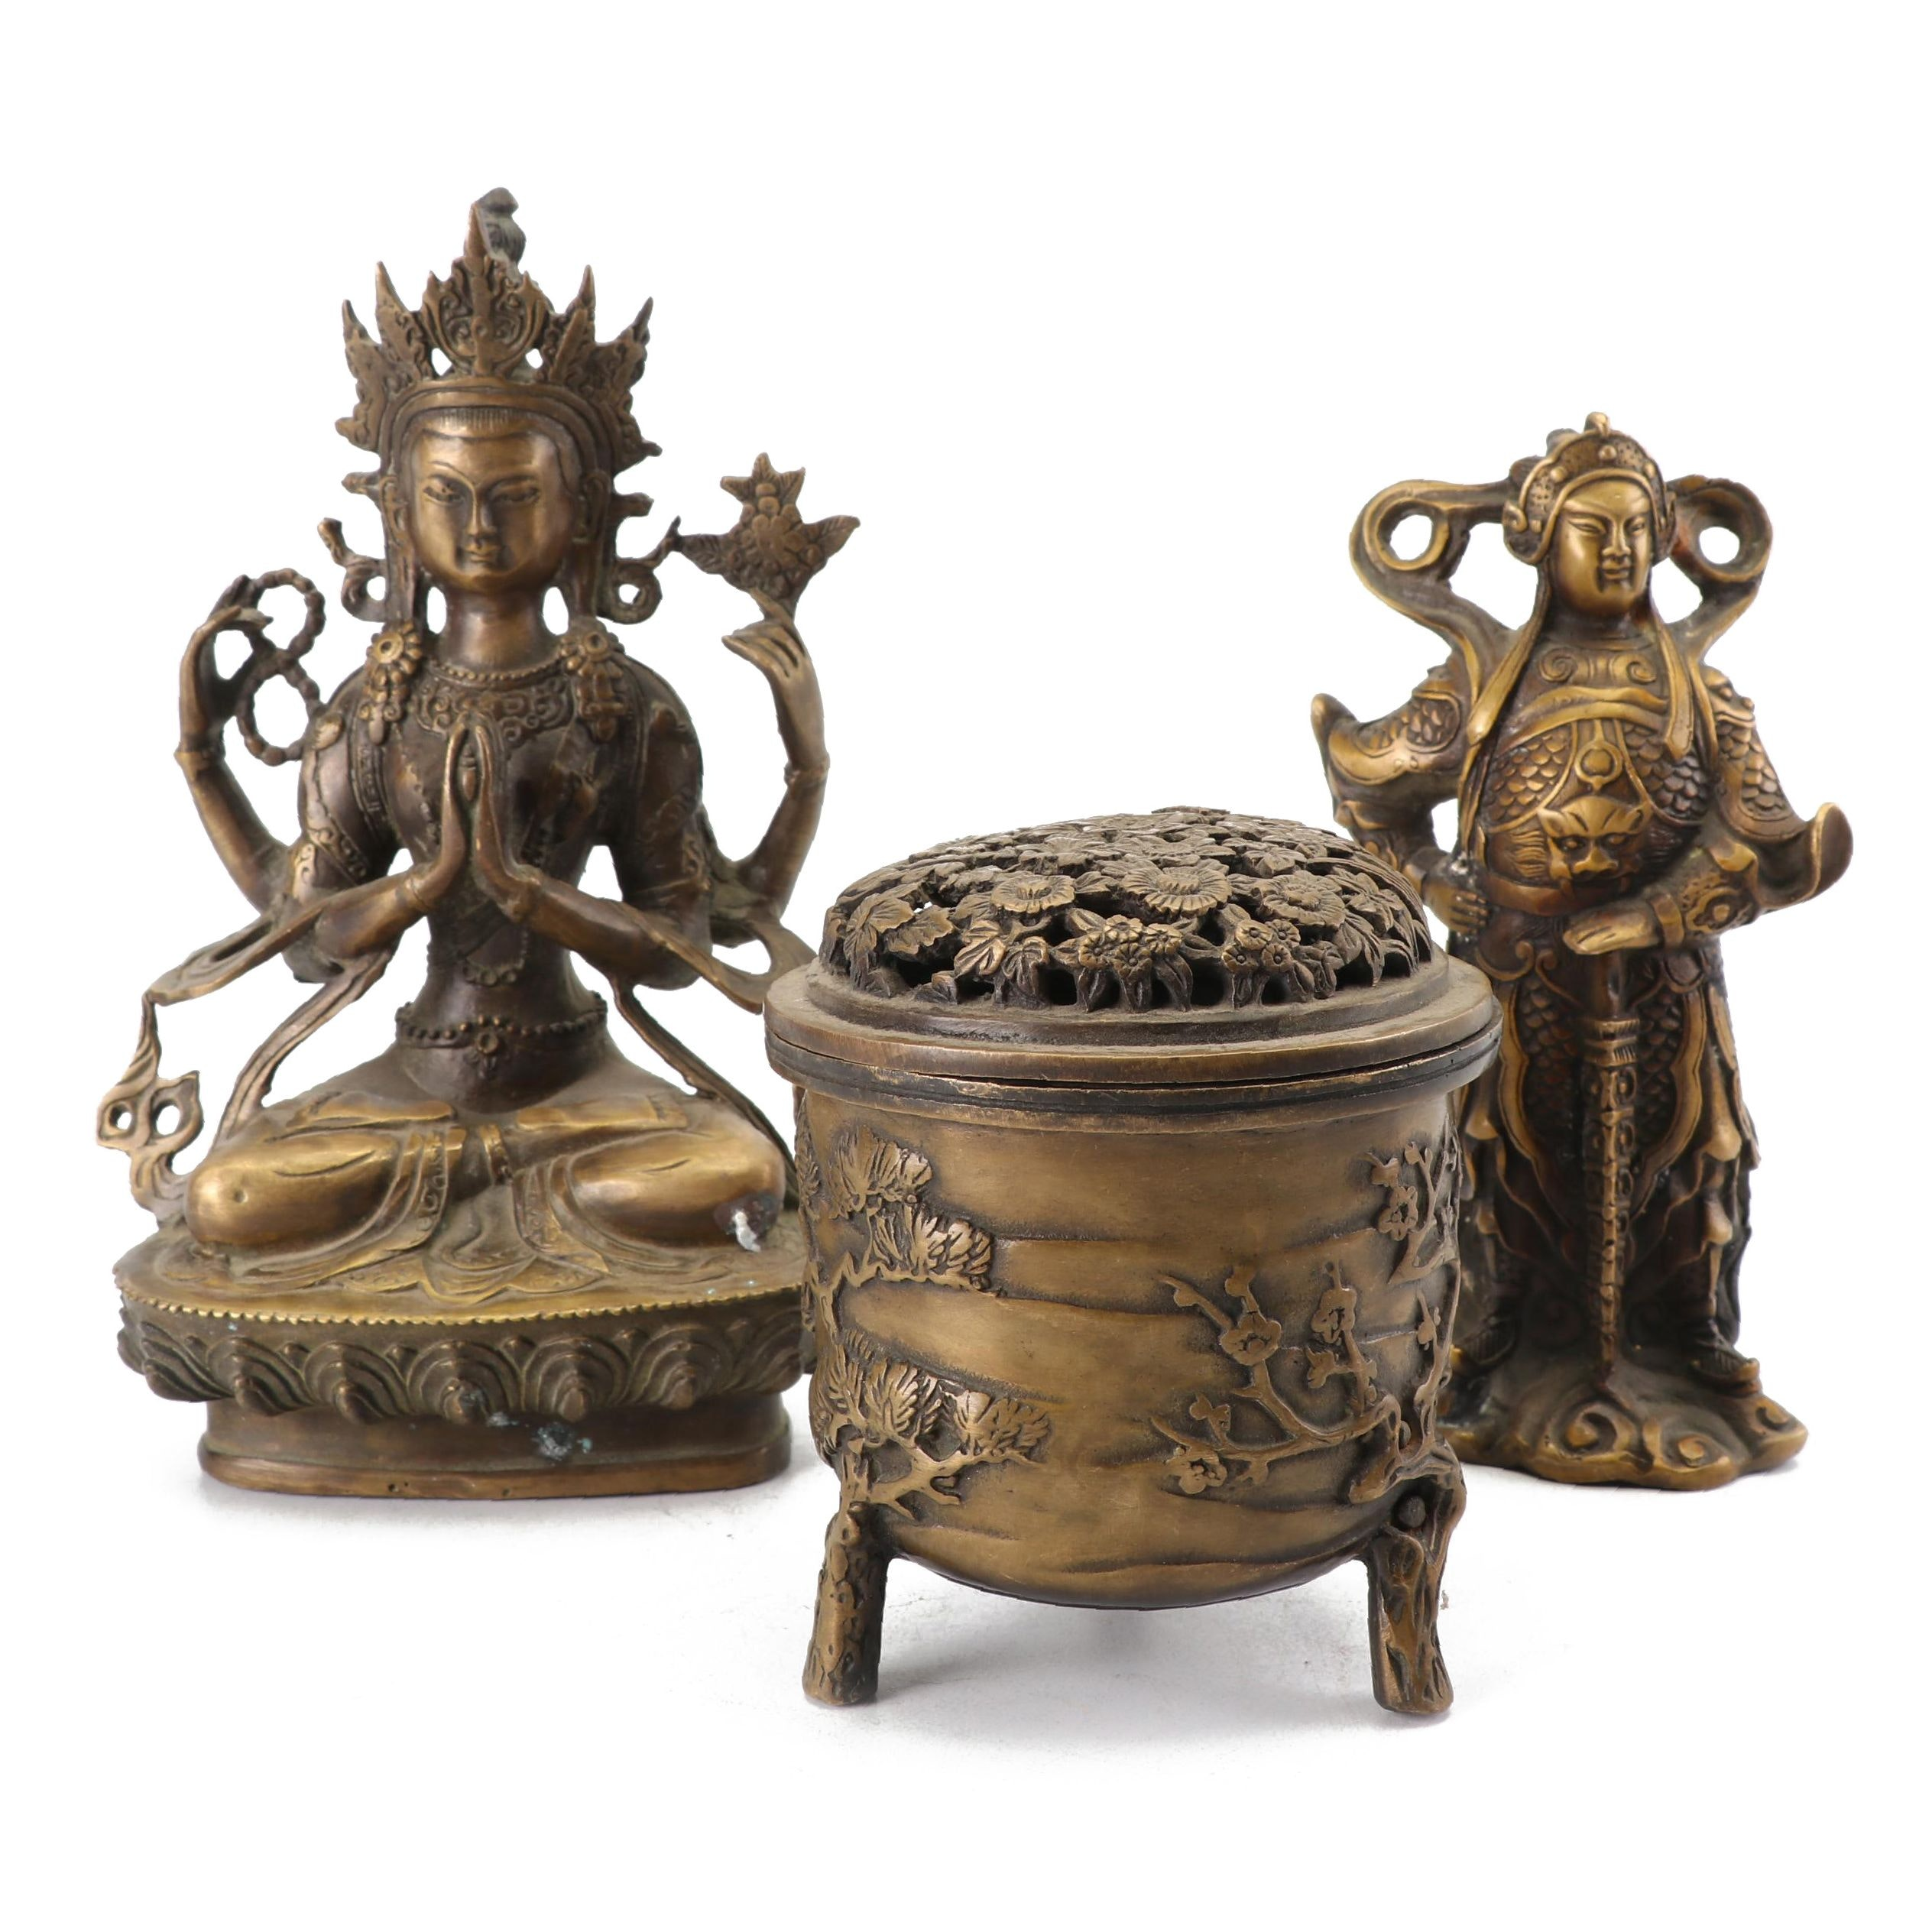 Chinese and Tibetan Style Brass Incense Burner and Figurines